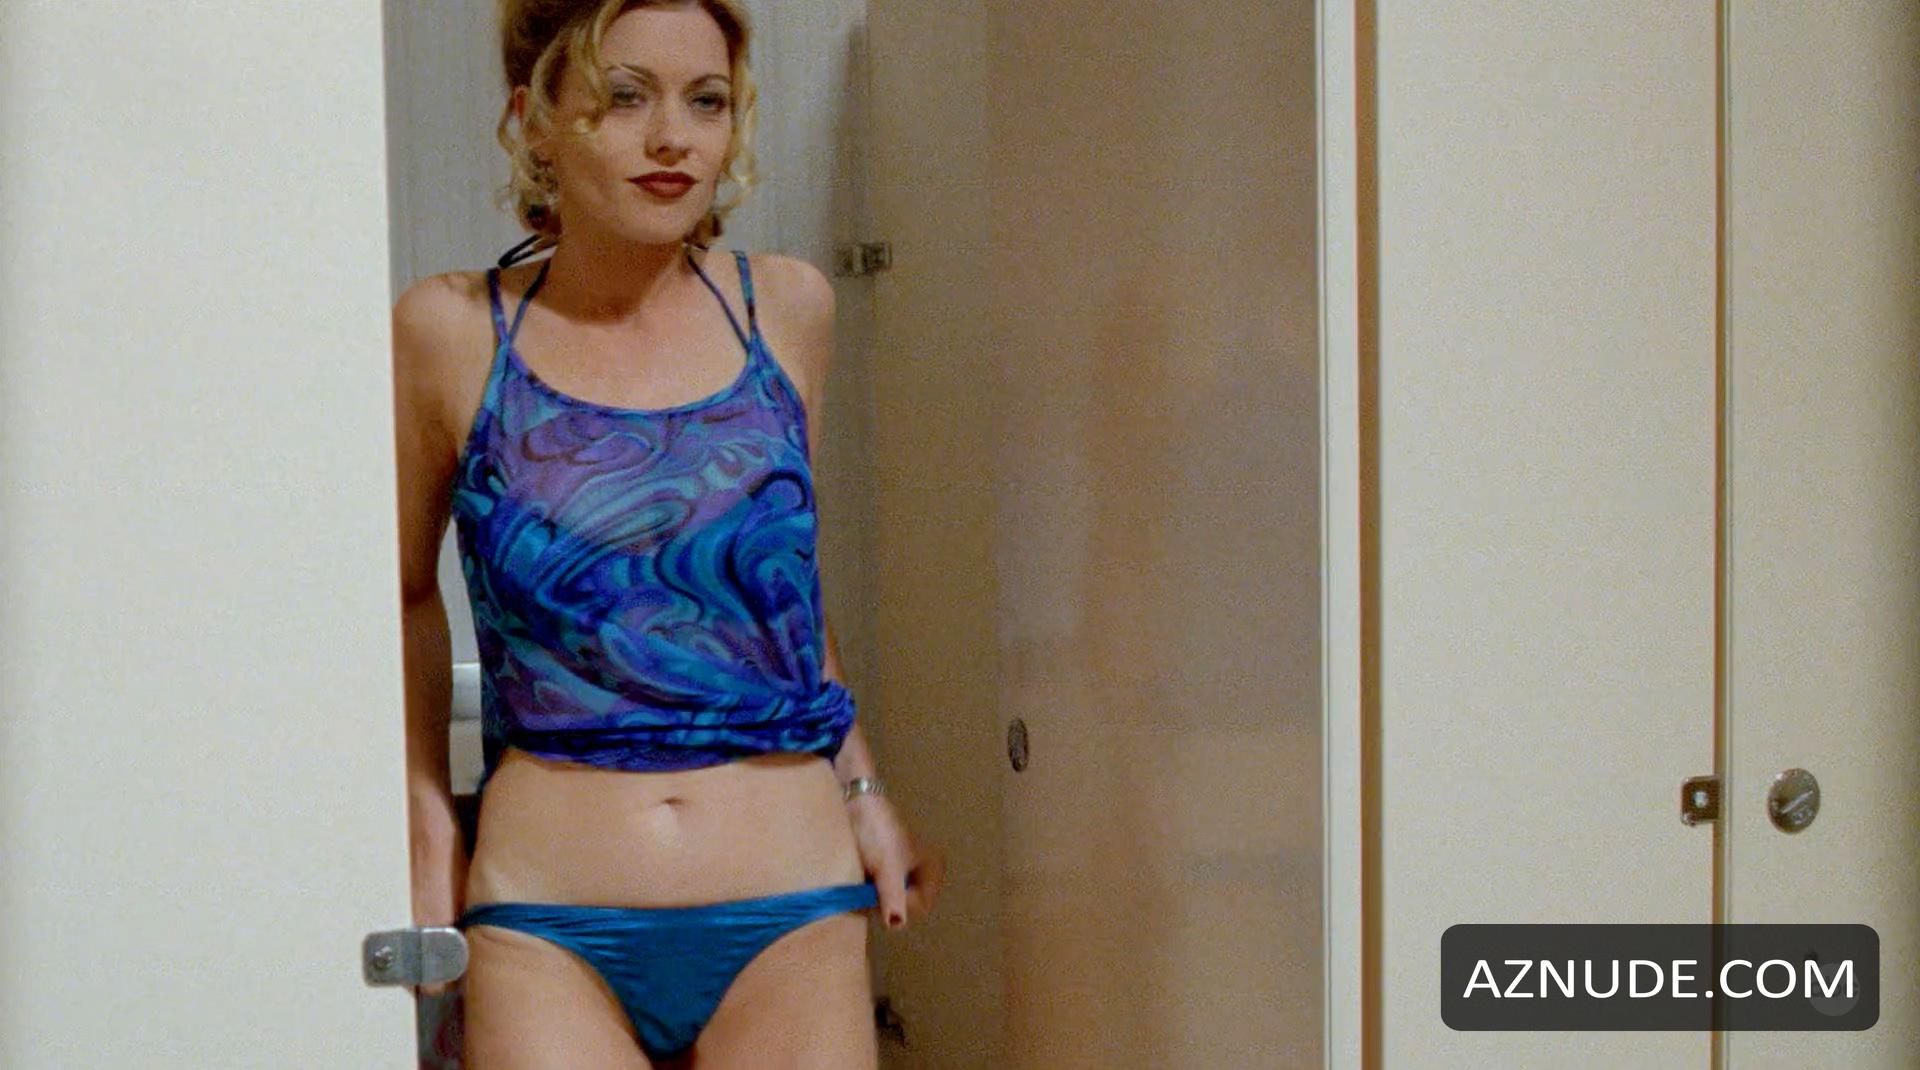 Chandra west nude in nypd blue